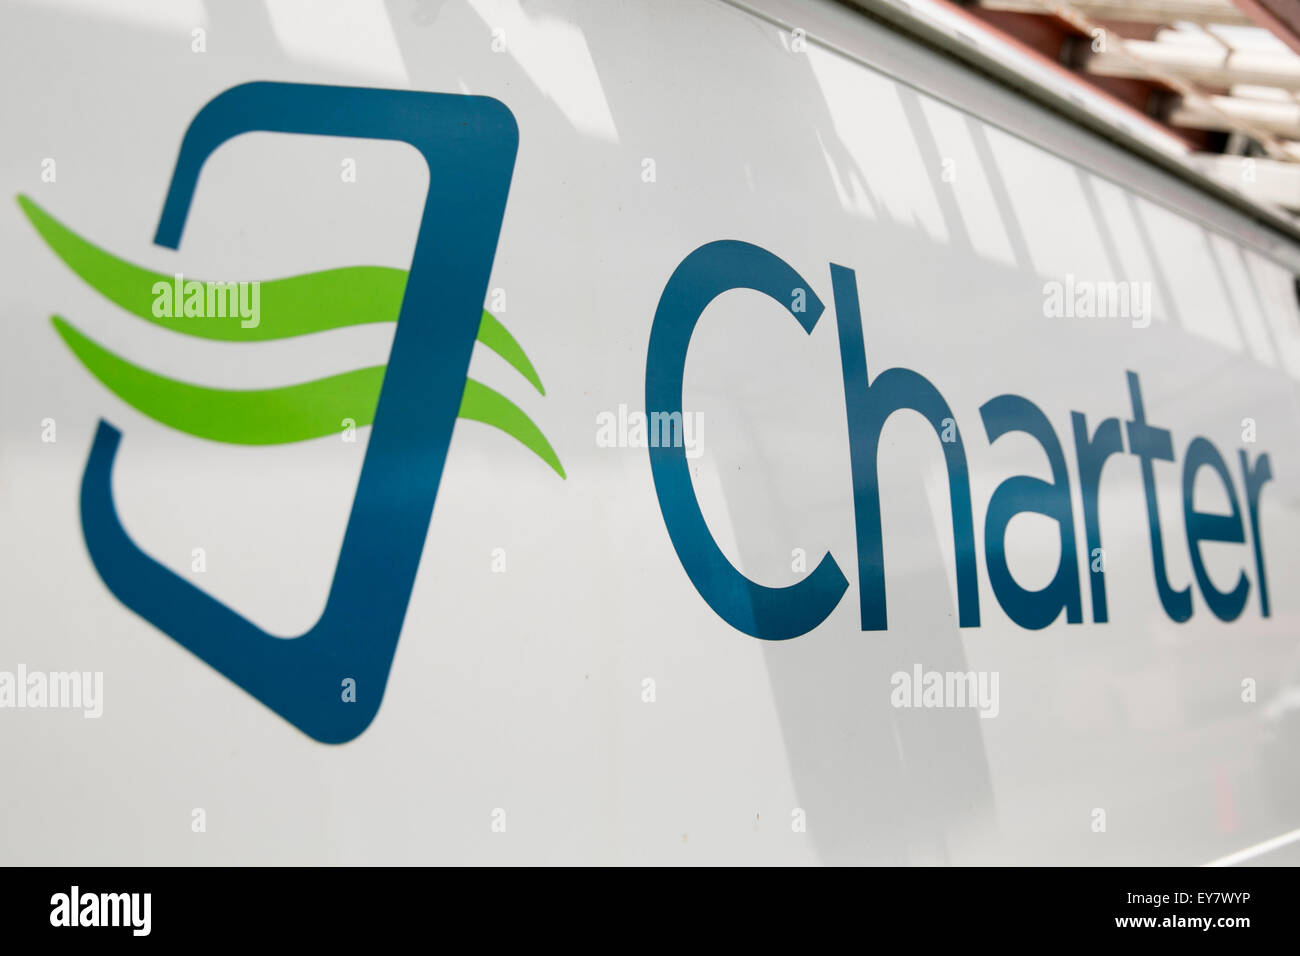 A Charter logo on a cable TV installation van belonging to Charter Communications, Inc. in Onancock, Virginia on - Stock Image